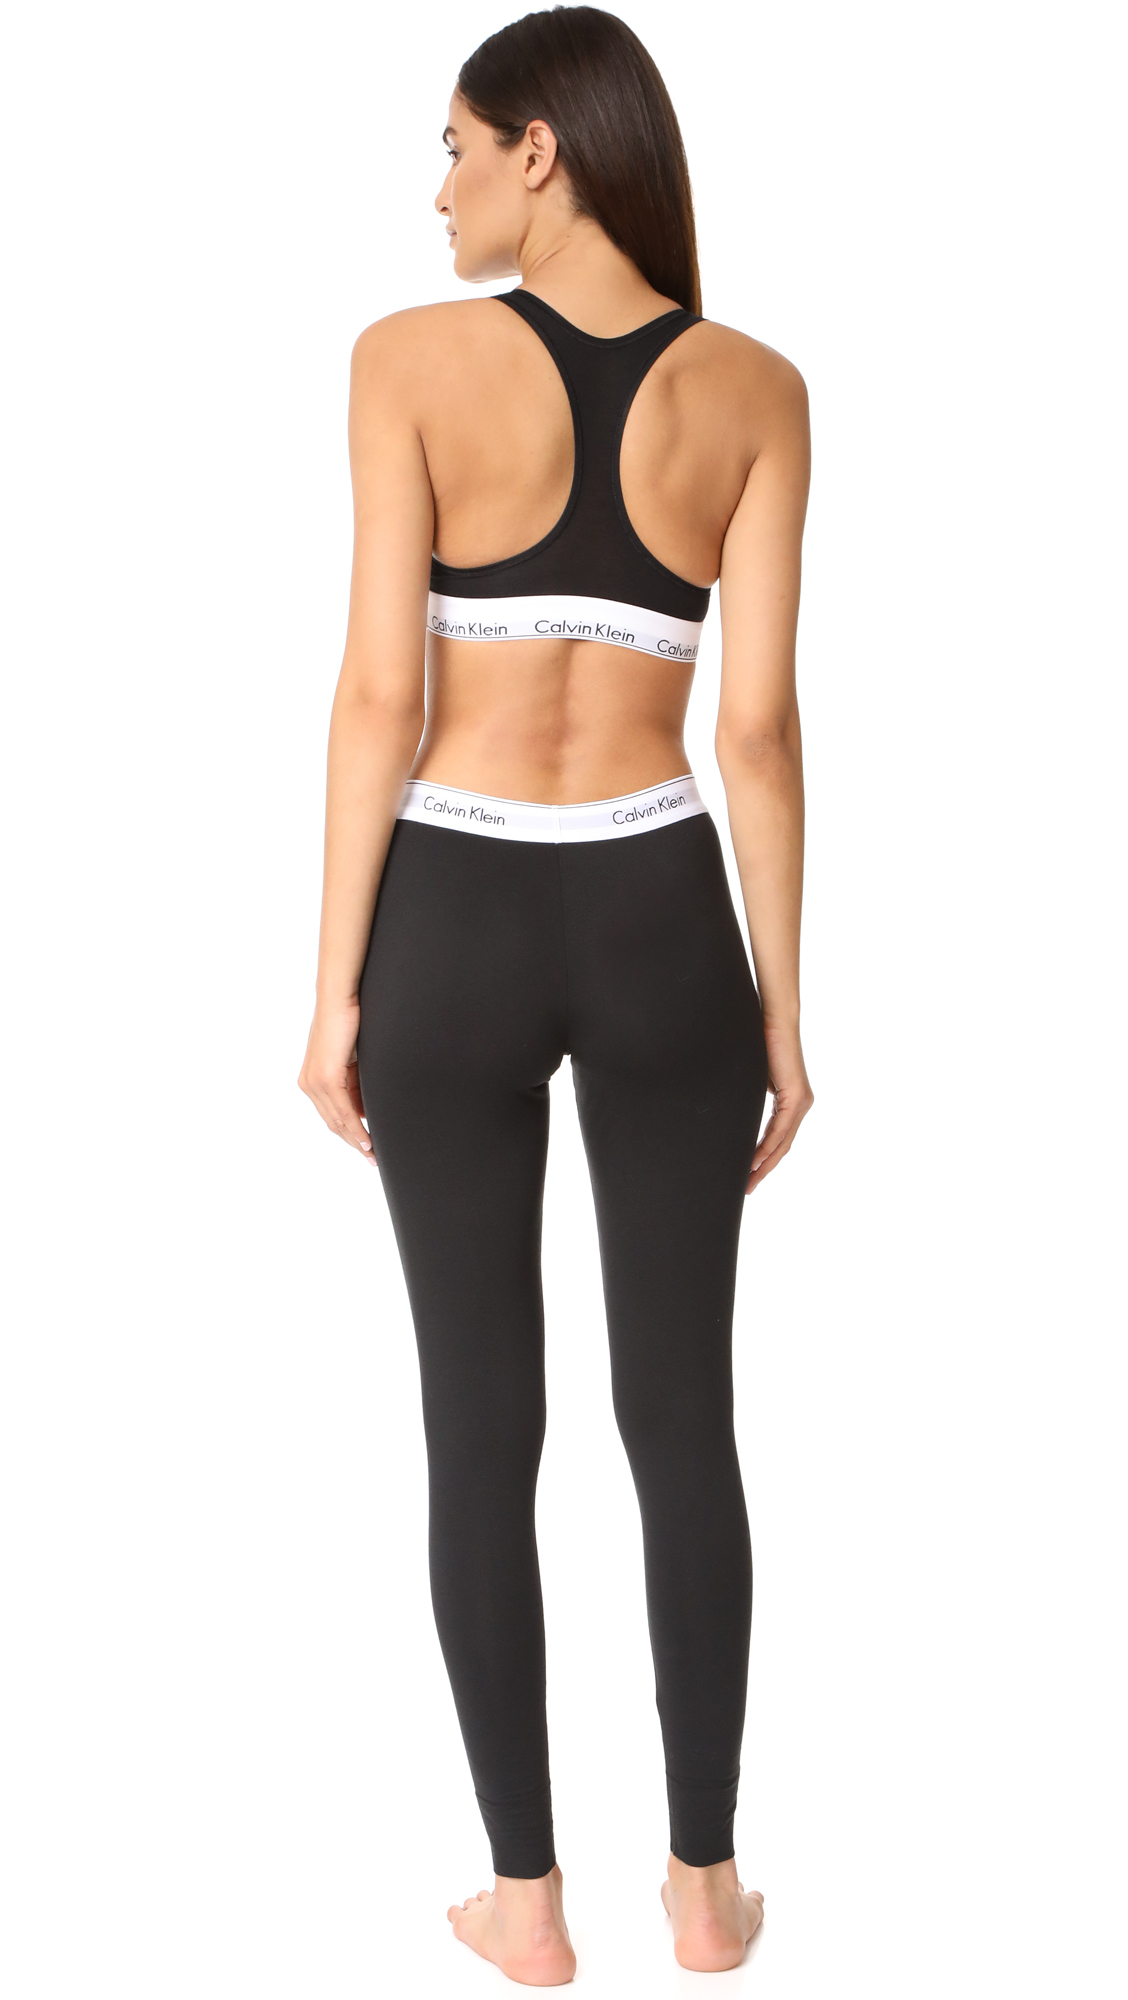 f0e868e5d758d Calvin Klein Underwear Modern Cotton Bralette   Leggings Set